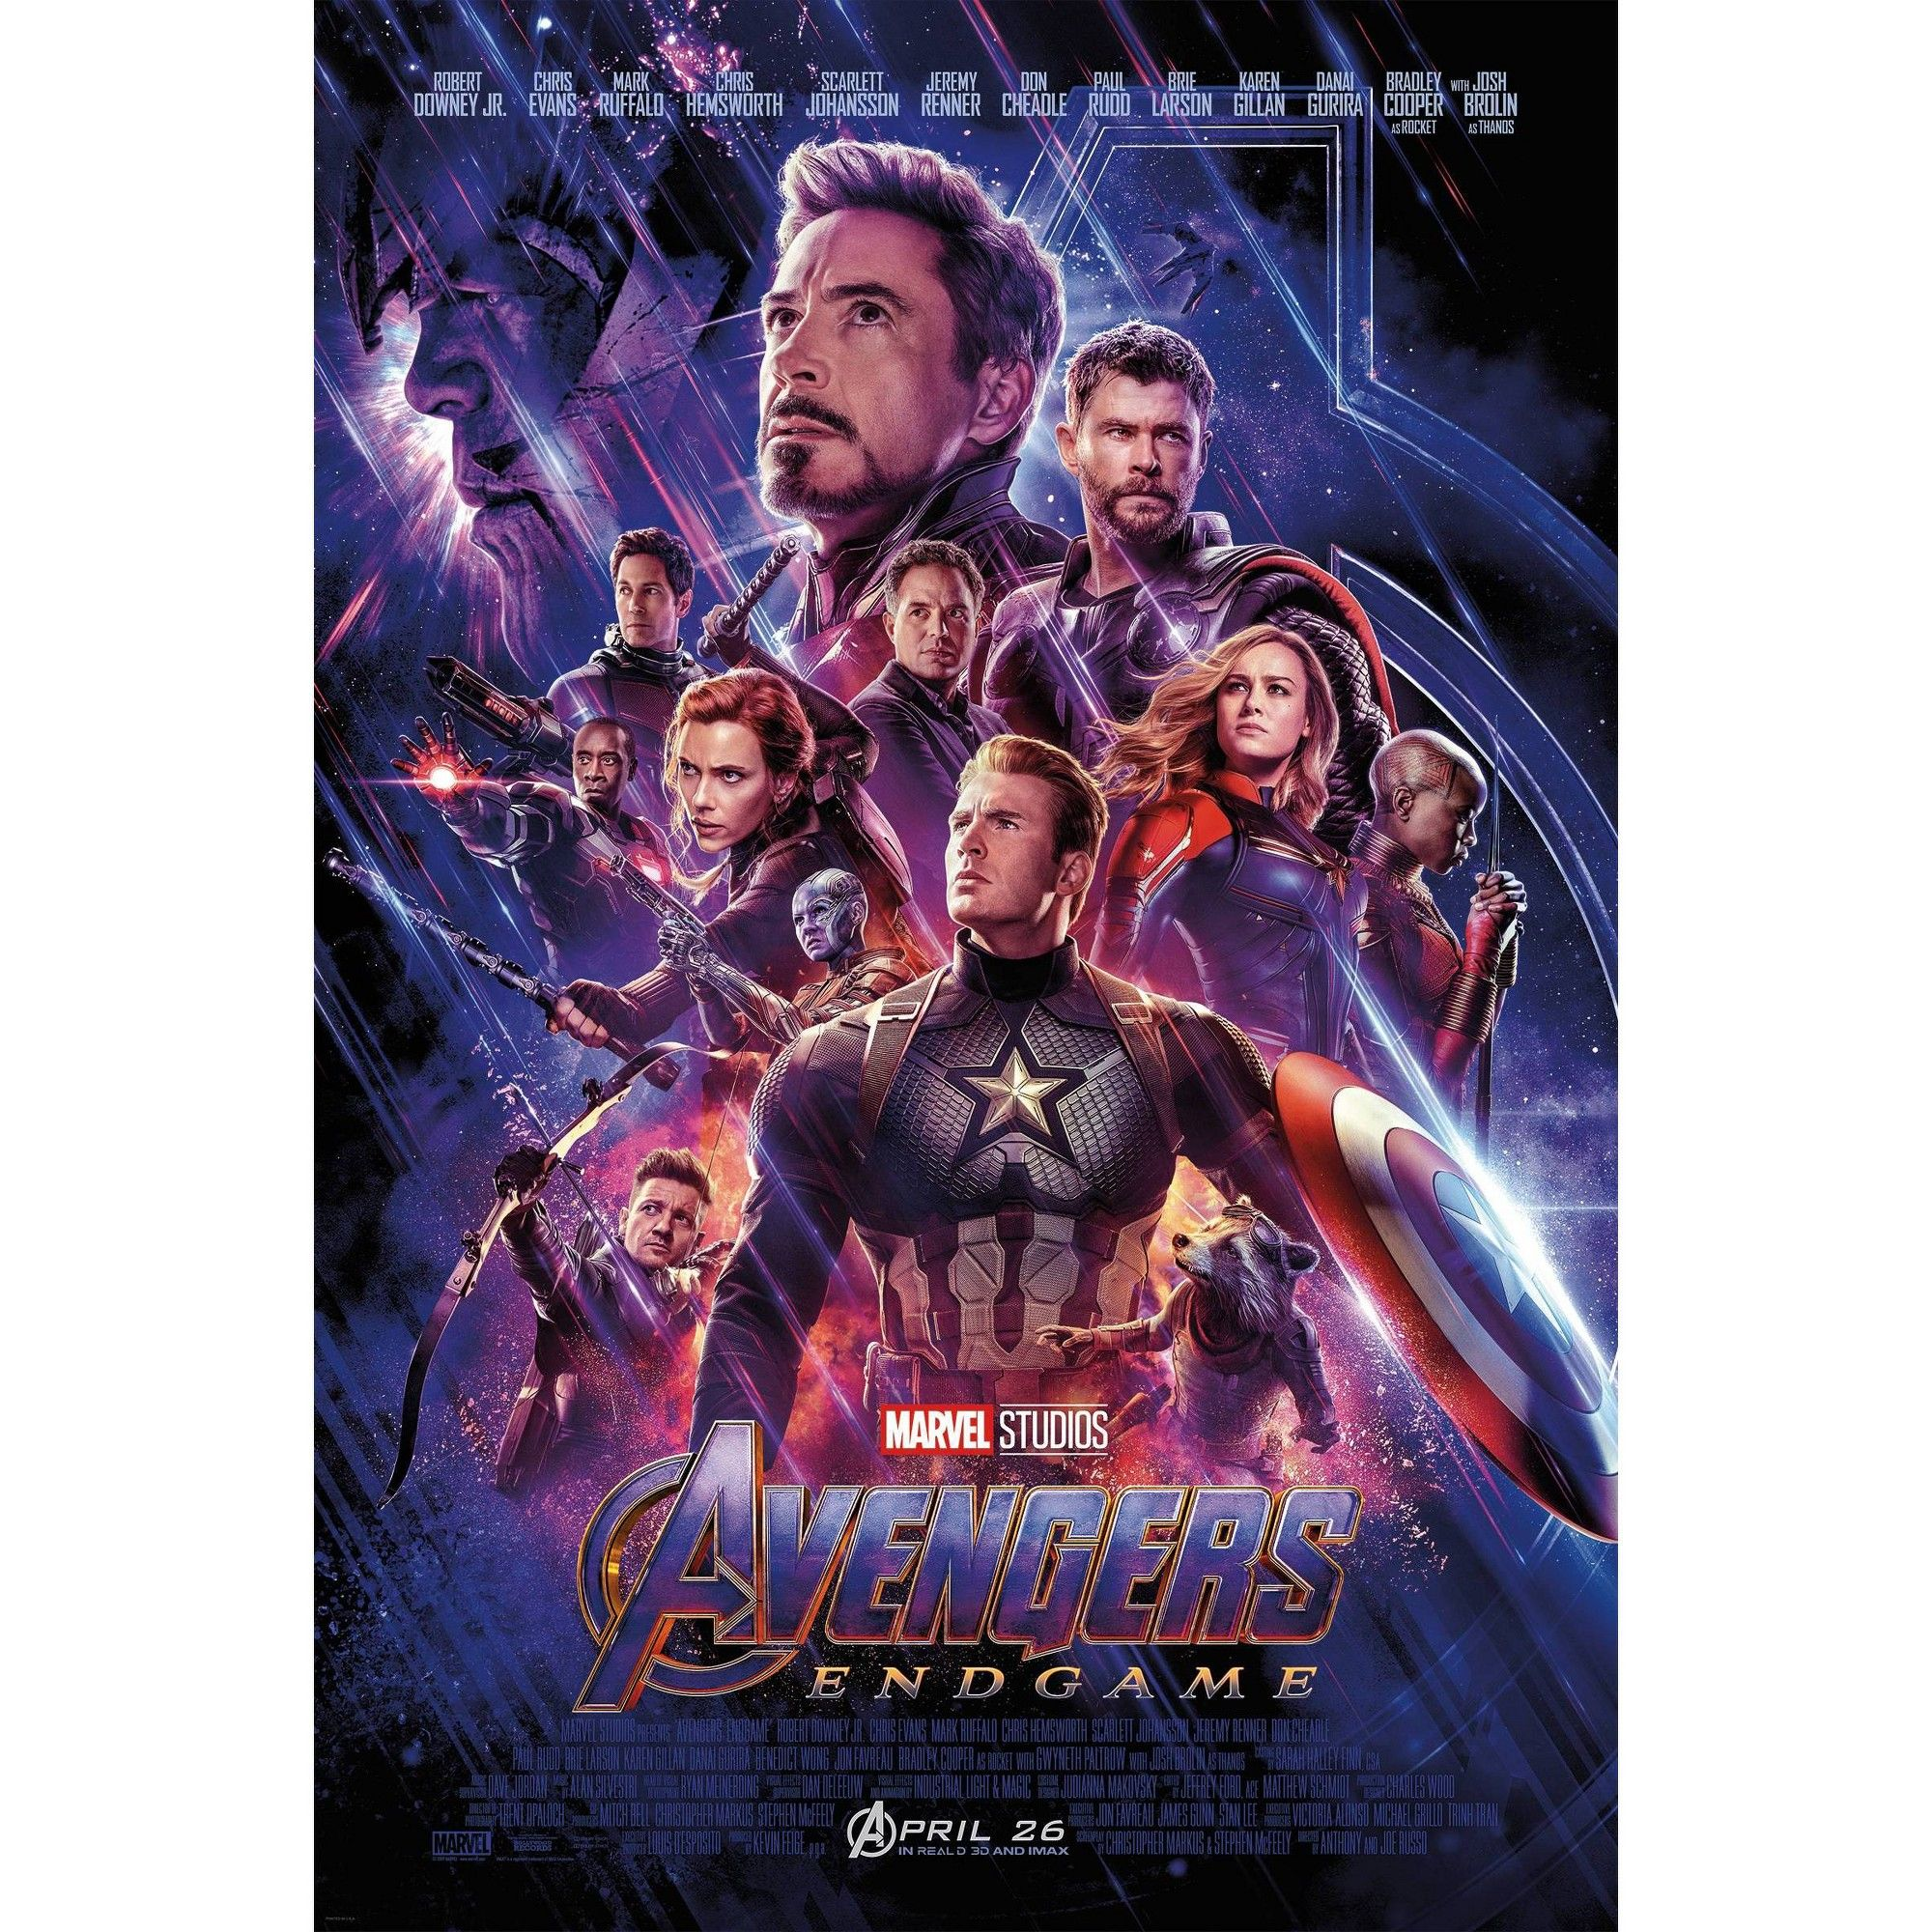 Avengers Endgame 4k Uhd Blu Ray Digital Avengers Poster Marvel Movie Posters Marvel Superheroes